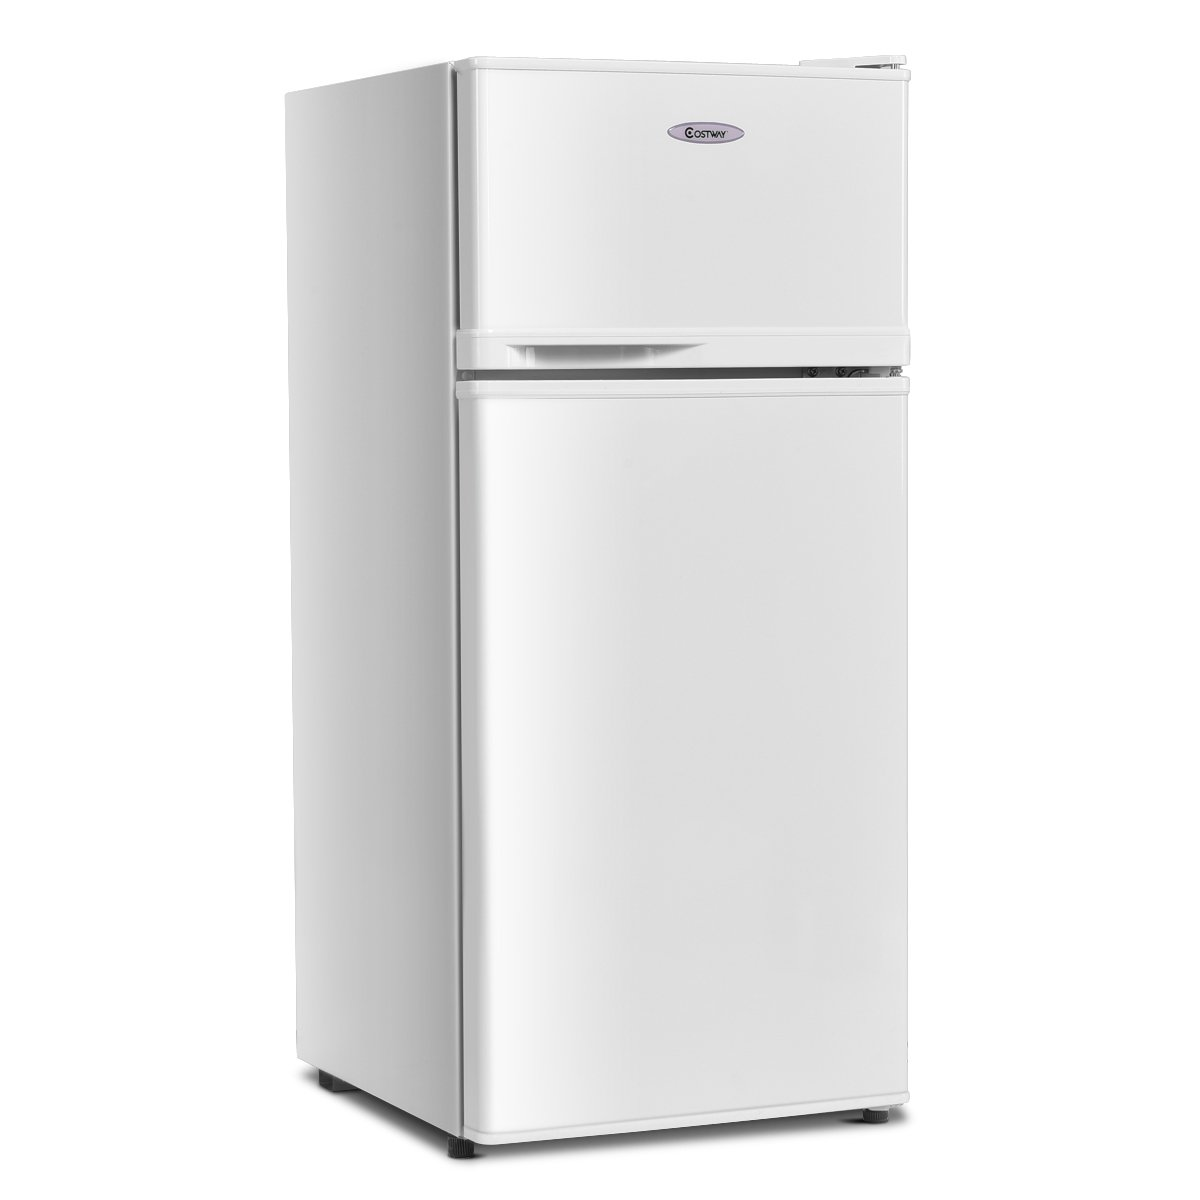 Costway 3.4 cu. ft. 2 Door Compact Mini Refrigerator Freezer Cooler (White)